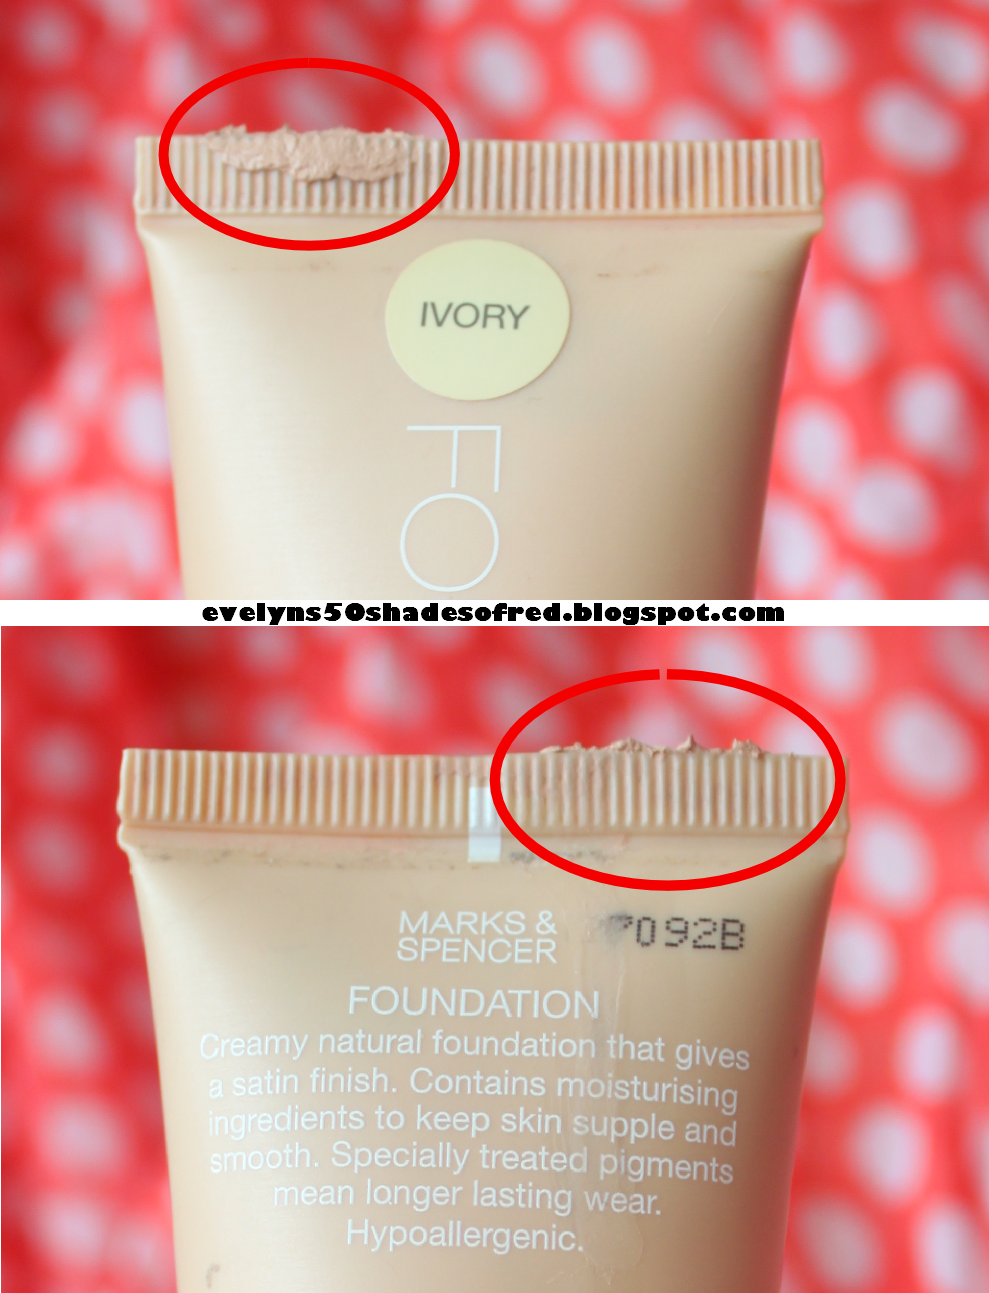 Marks & Spencer,  Natural Foundation Moisturiser, Limited Collection, Ivory